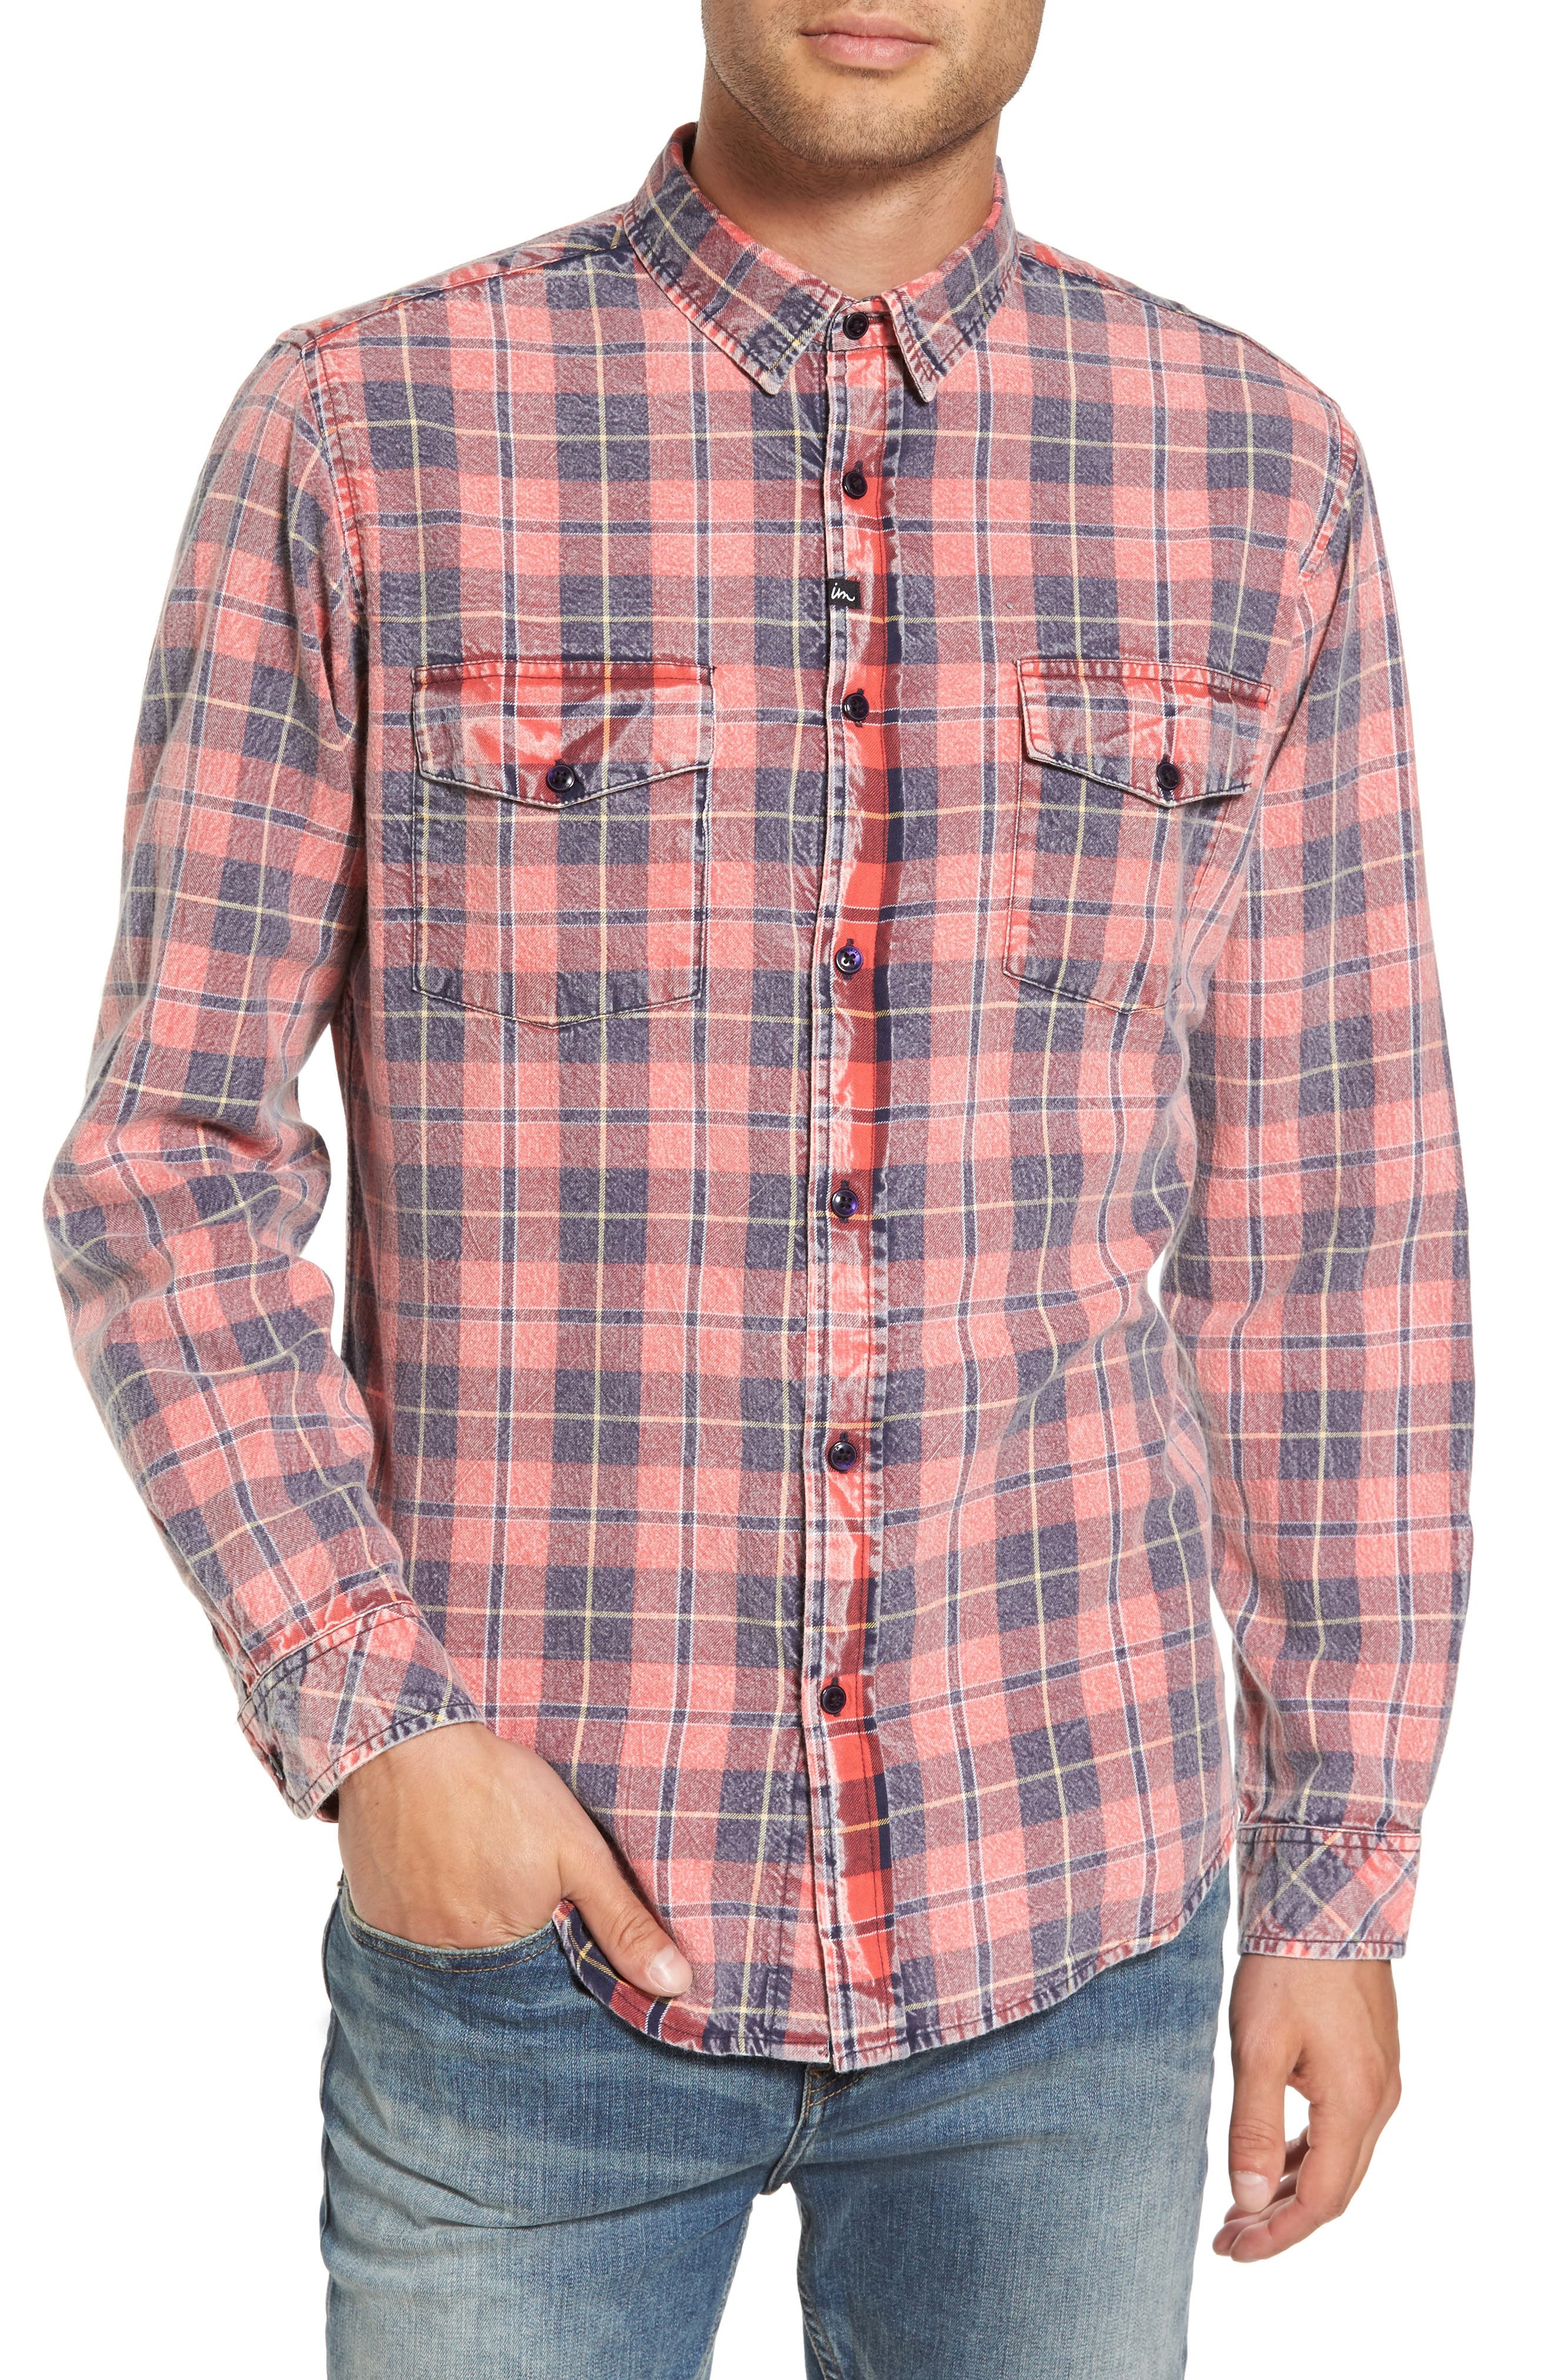 Greenwich Flannel Shirt,                         Main,                         color, Faded Red